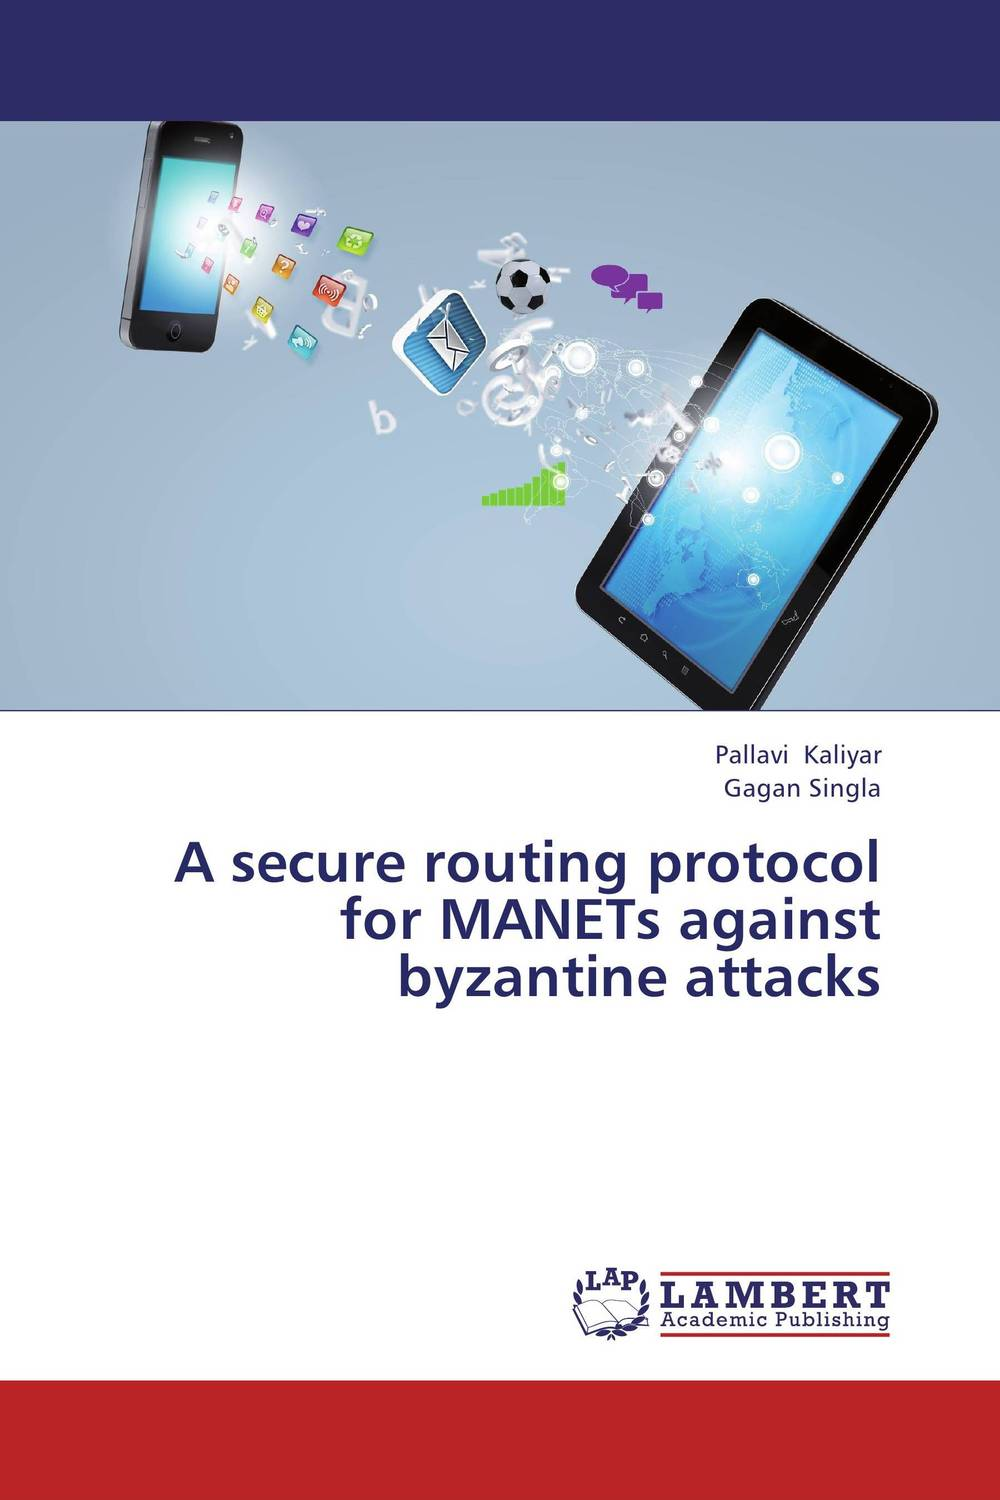 A secure routing protocol for MANETs against byzantine attacks belousov a security features of banknotes and other documents methods of authentication manual денежные билеты бланки ценных бумаг и документов